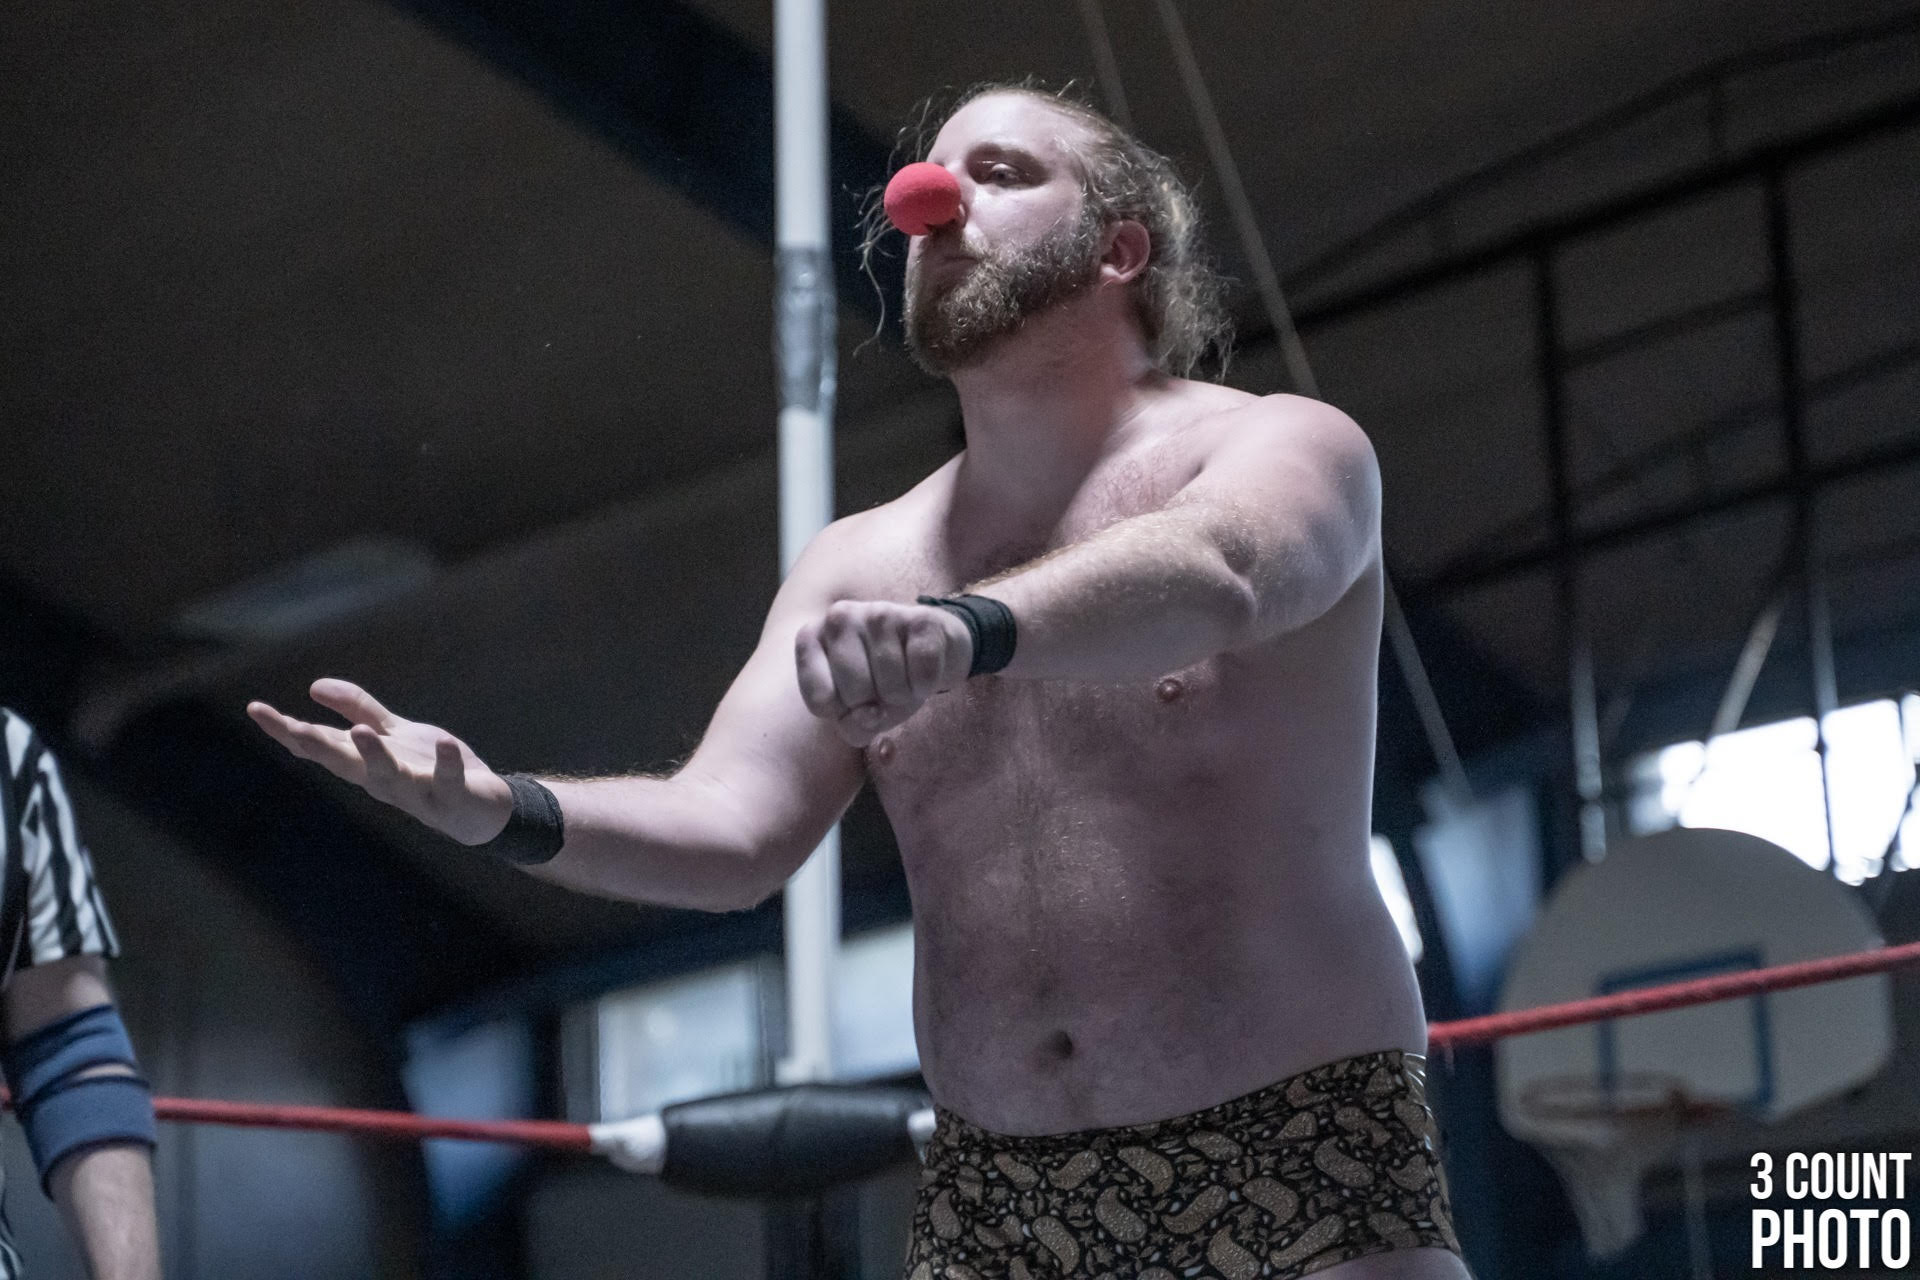 Photo Credit: 3 Count Photo and Chicago Style Wrestling